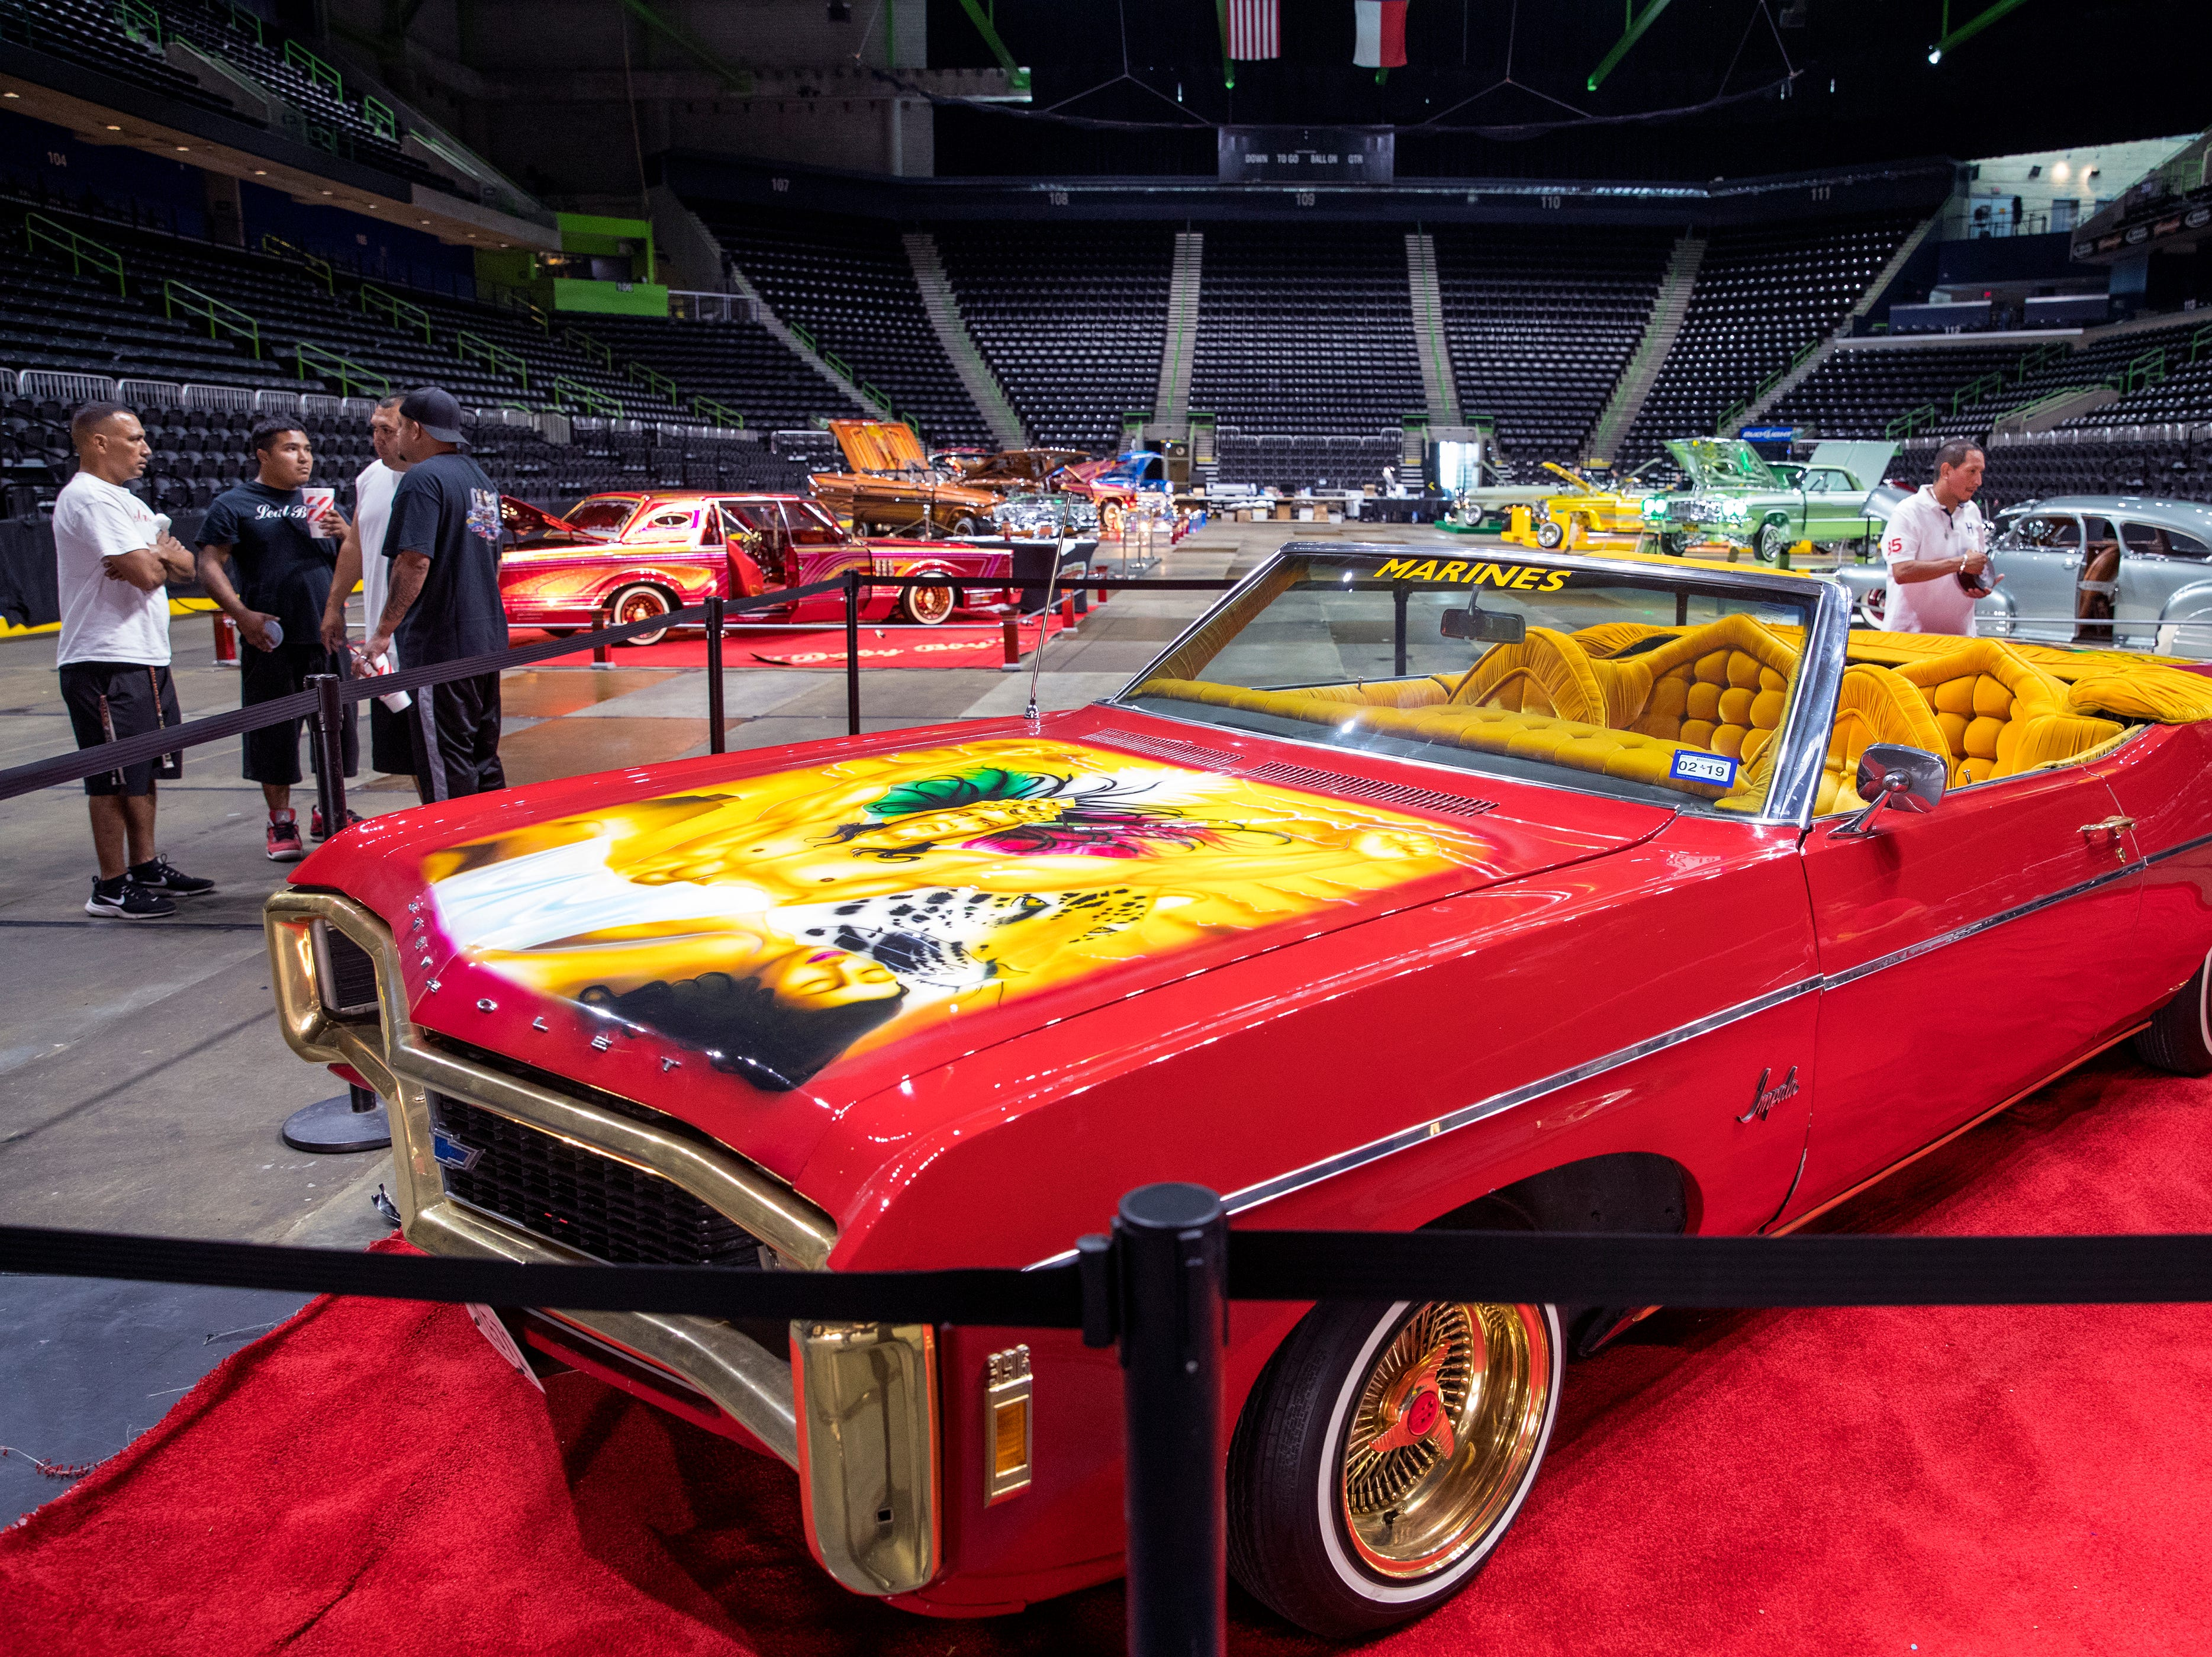 """Low riders like this one featured in the film """"Selena"""" on display inside the American Bank Center before the start of Fiesta de la Flor on Friday, April 12, 2019, in Corpus Christi, Texas."""